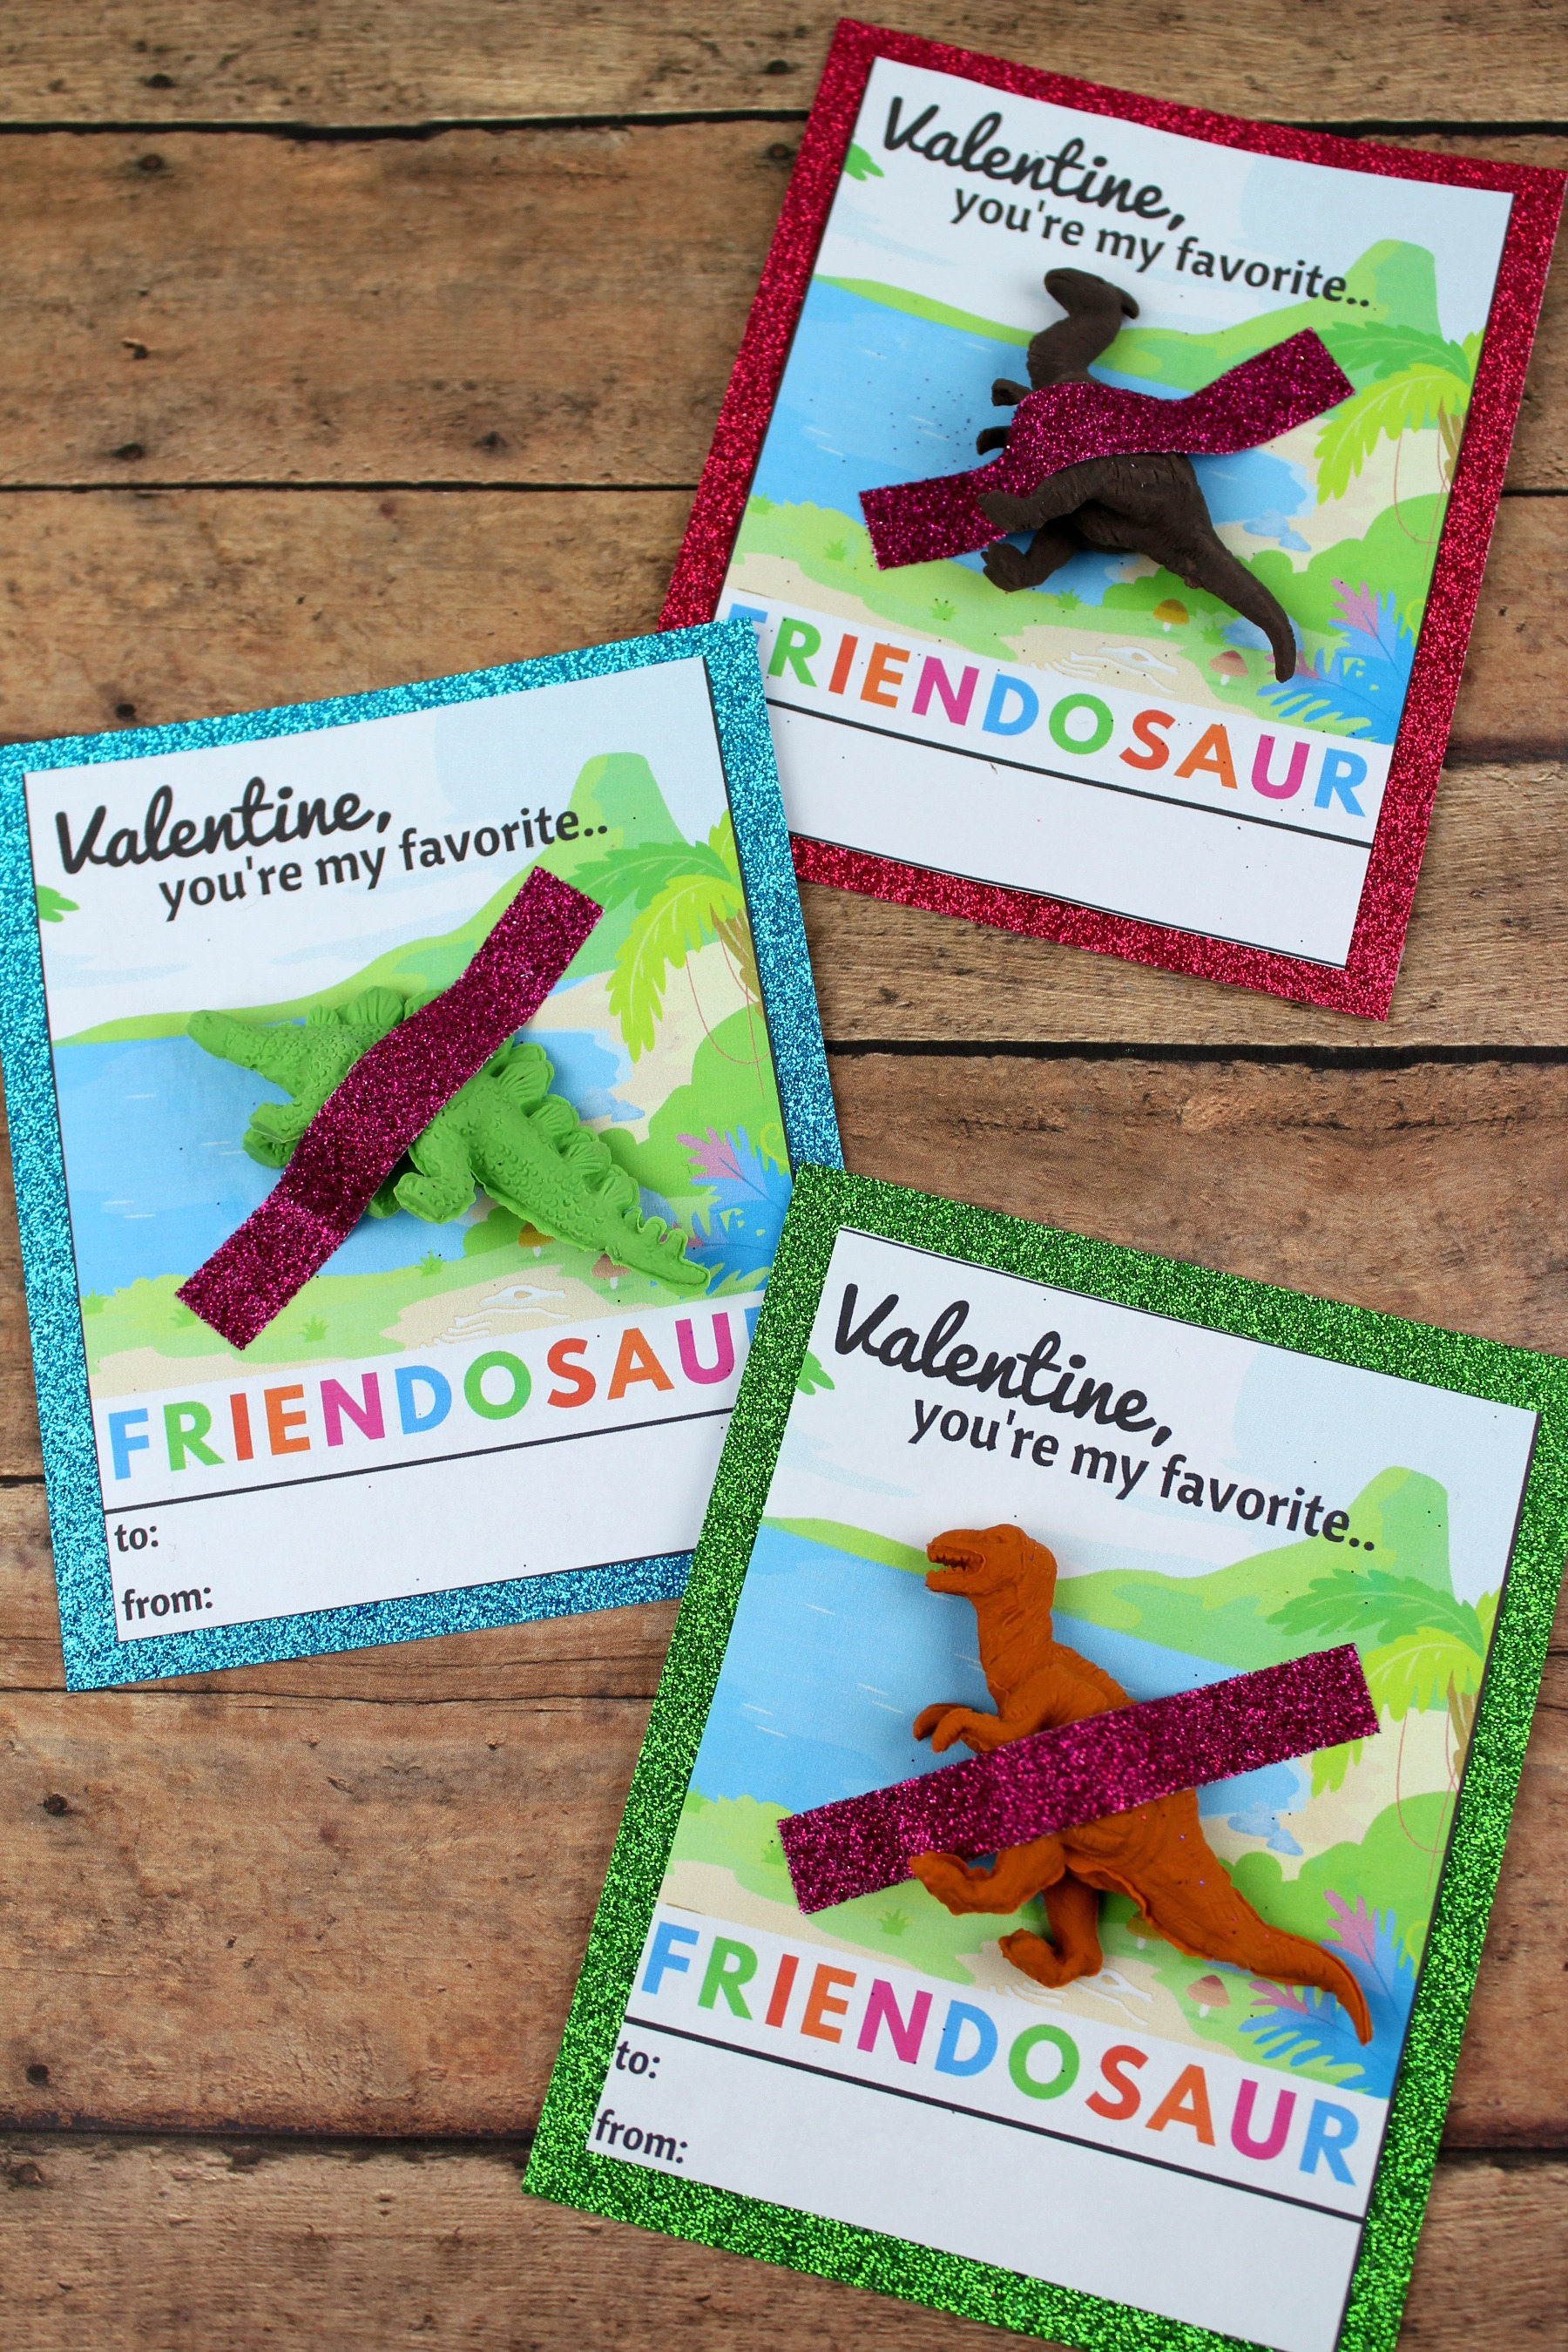 friendosaur-Valentine-Printable-Card-Dinosaur-Easy-DIY-cheap